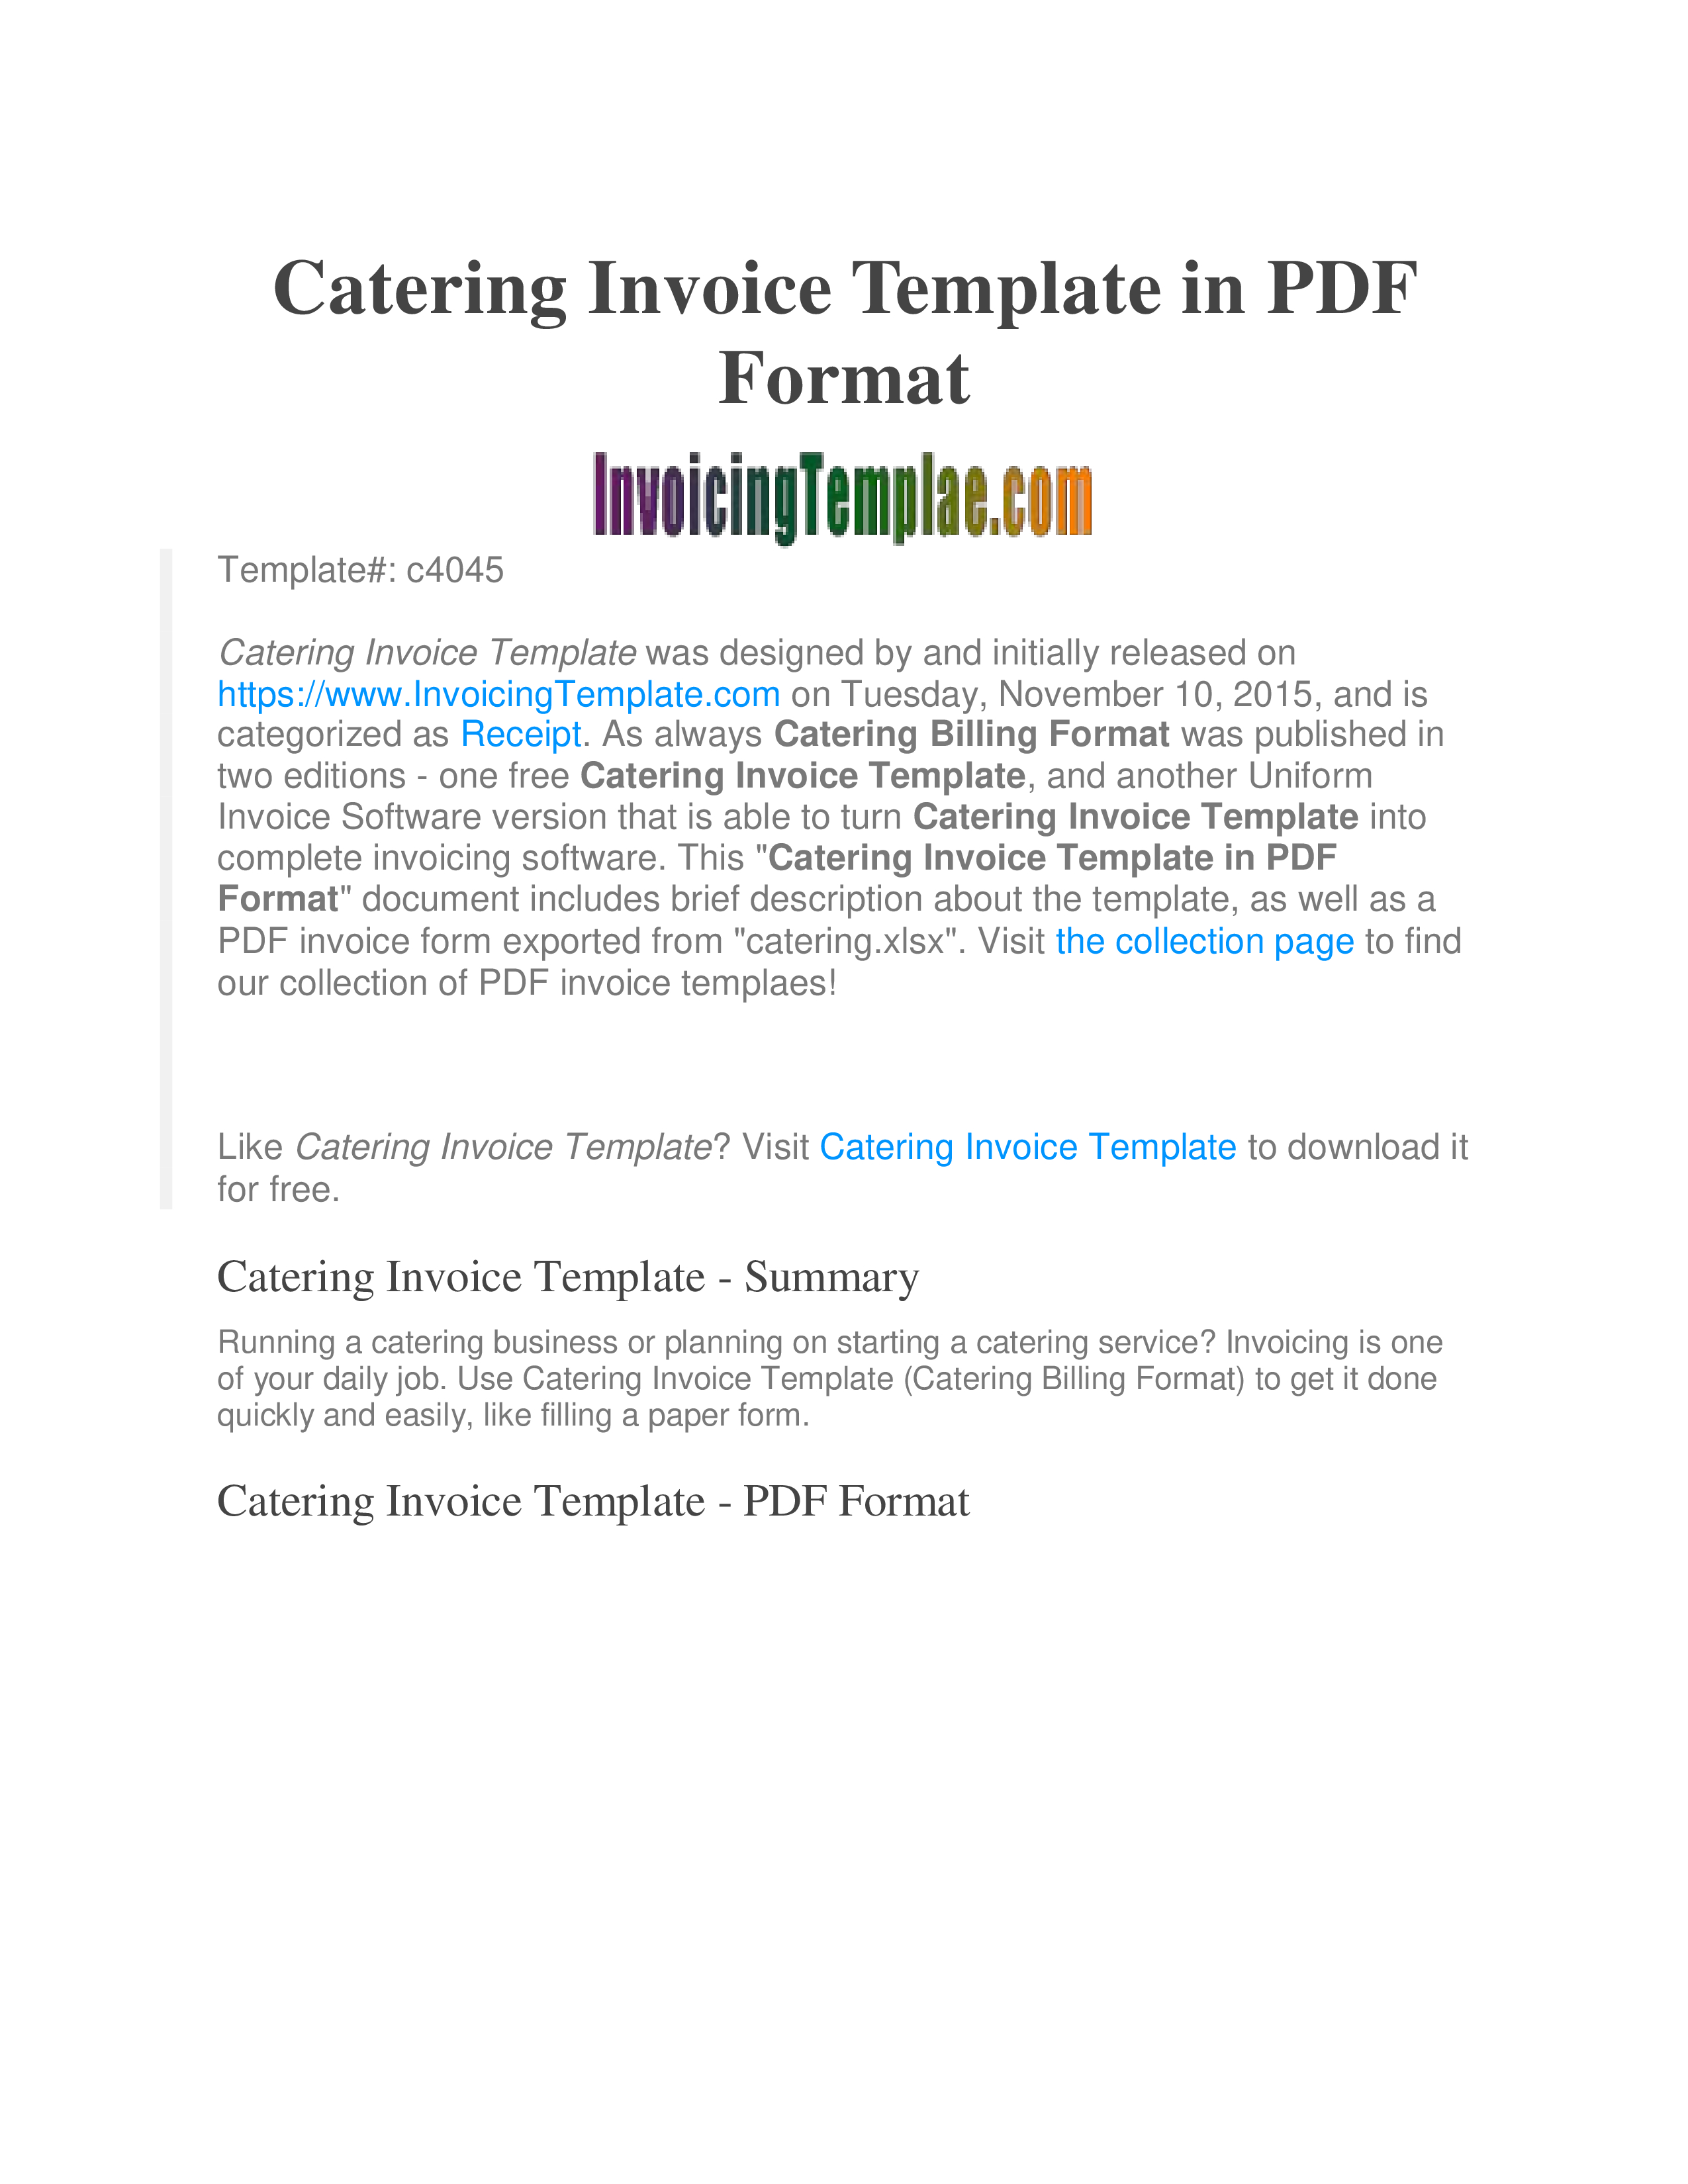 Free Printable Catering Invoice | Templates At Allbusinesstemplates - Free Printable Catering Invoice Template